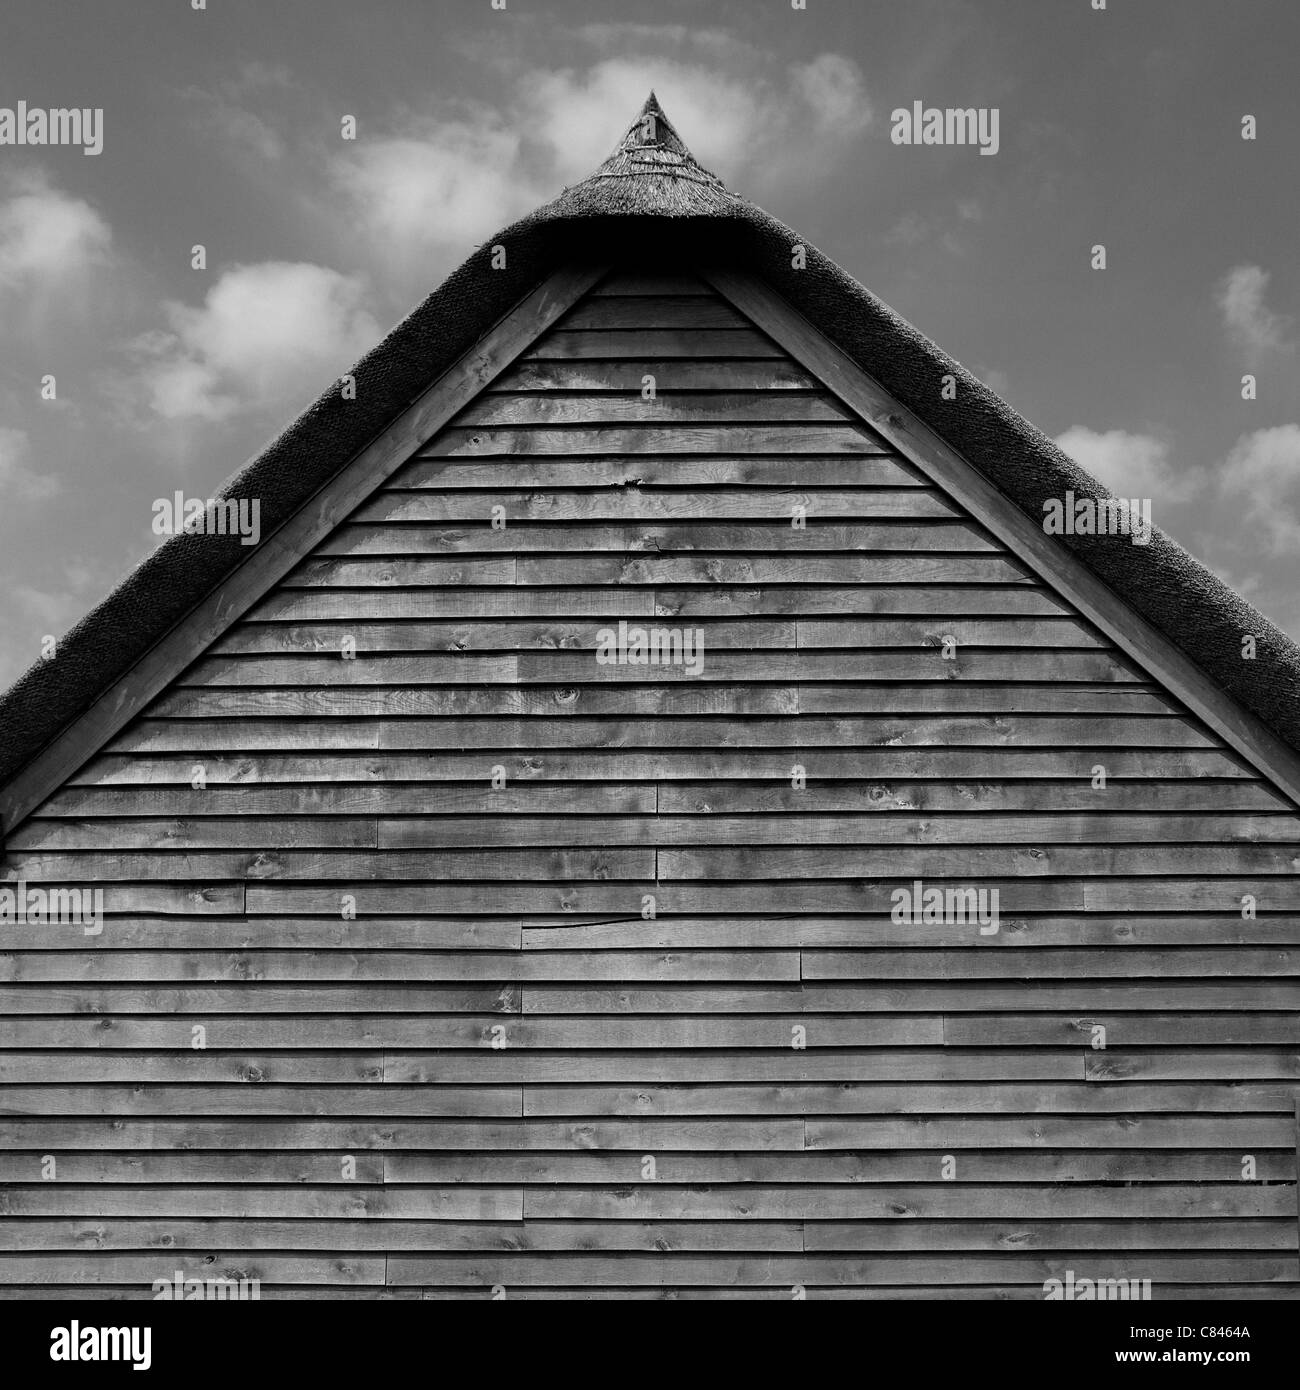 Thatched roof of barn - Stock Image